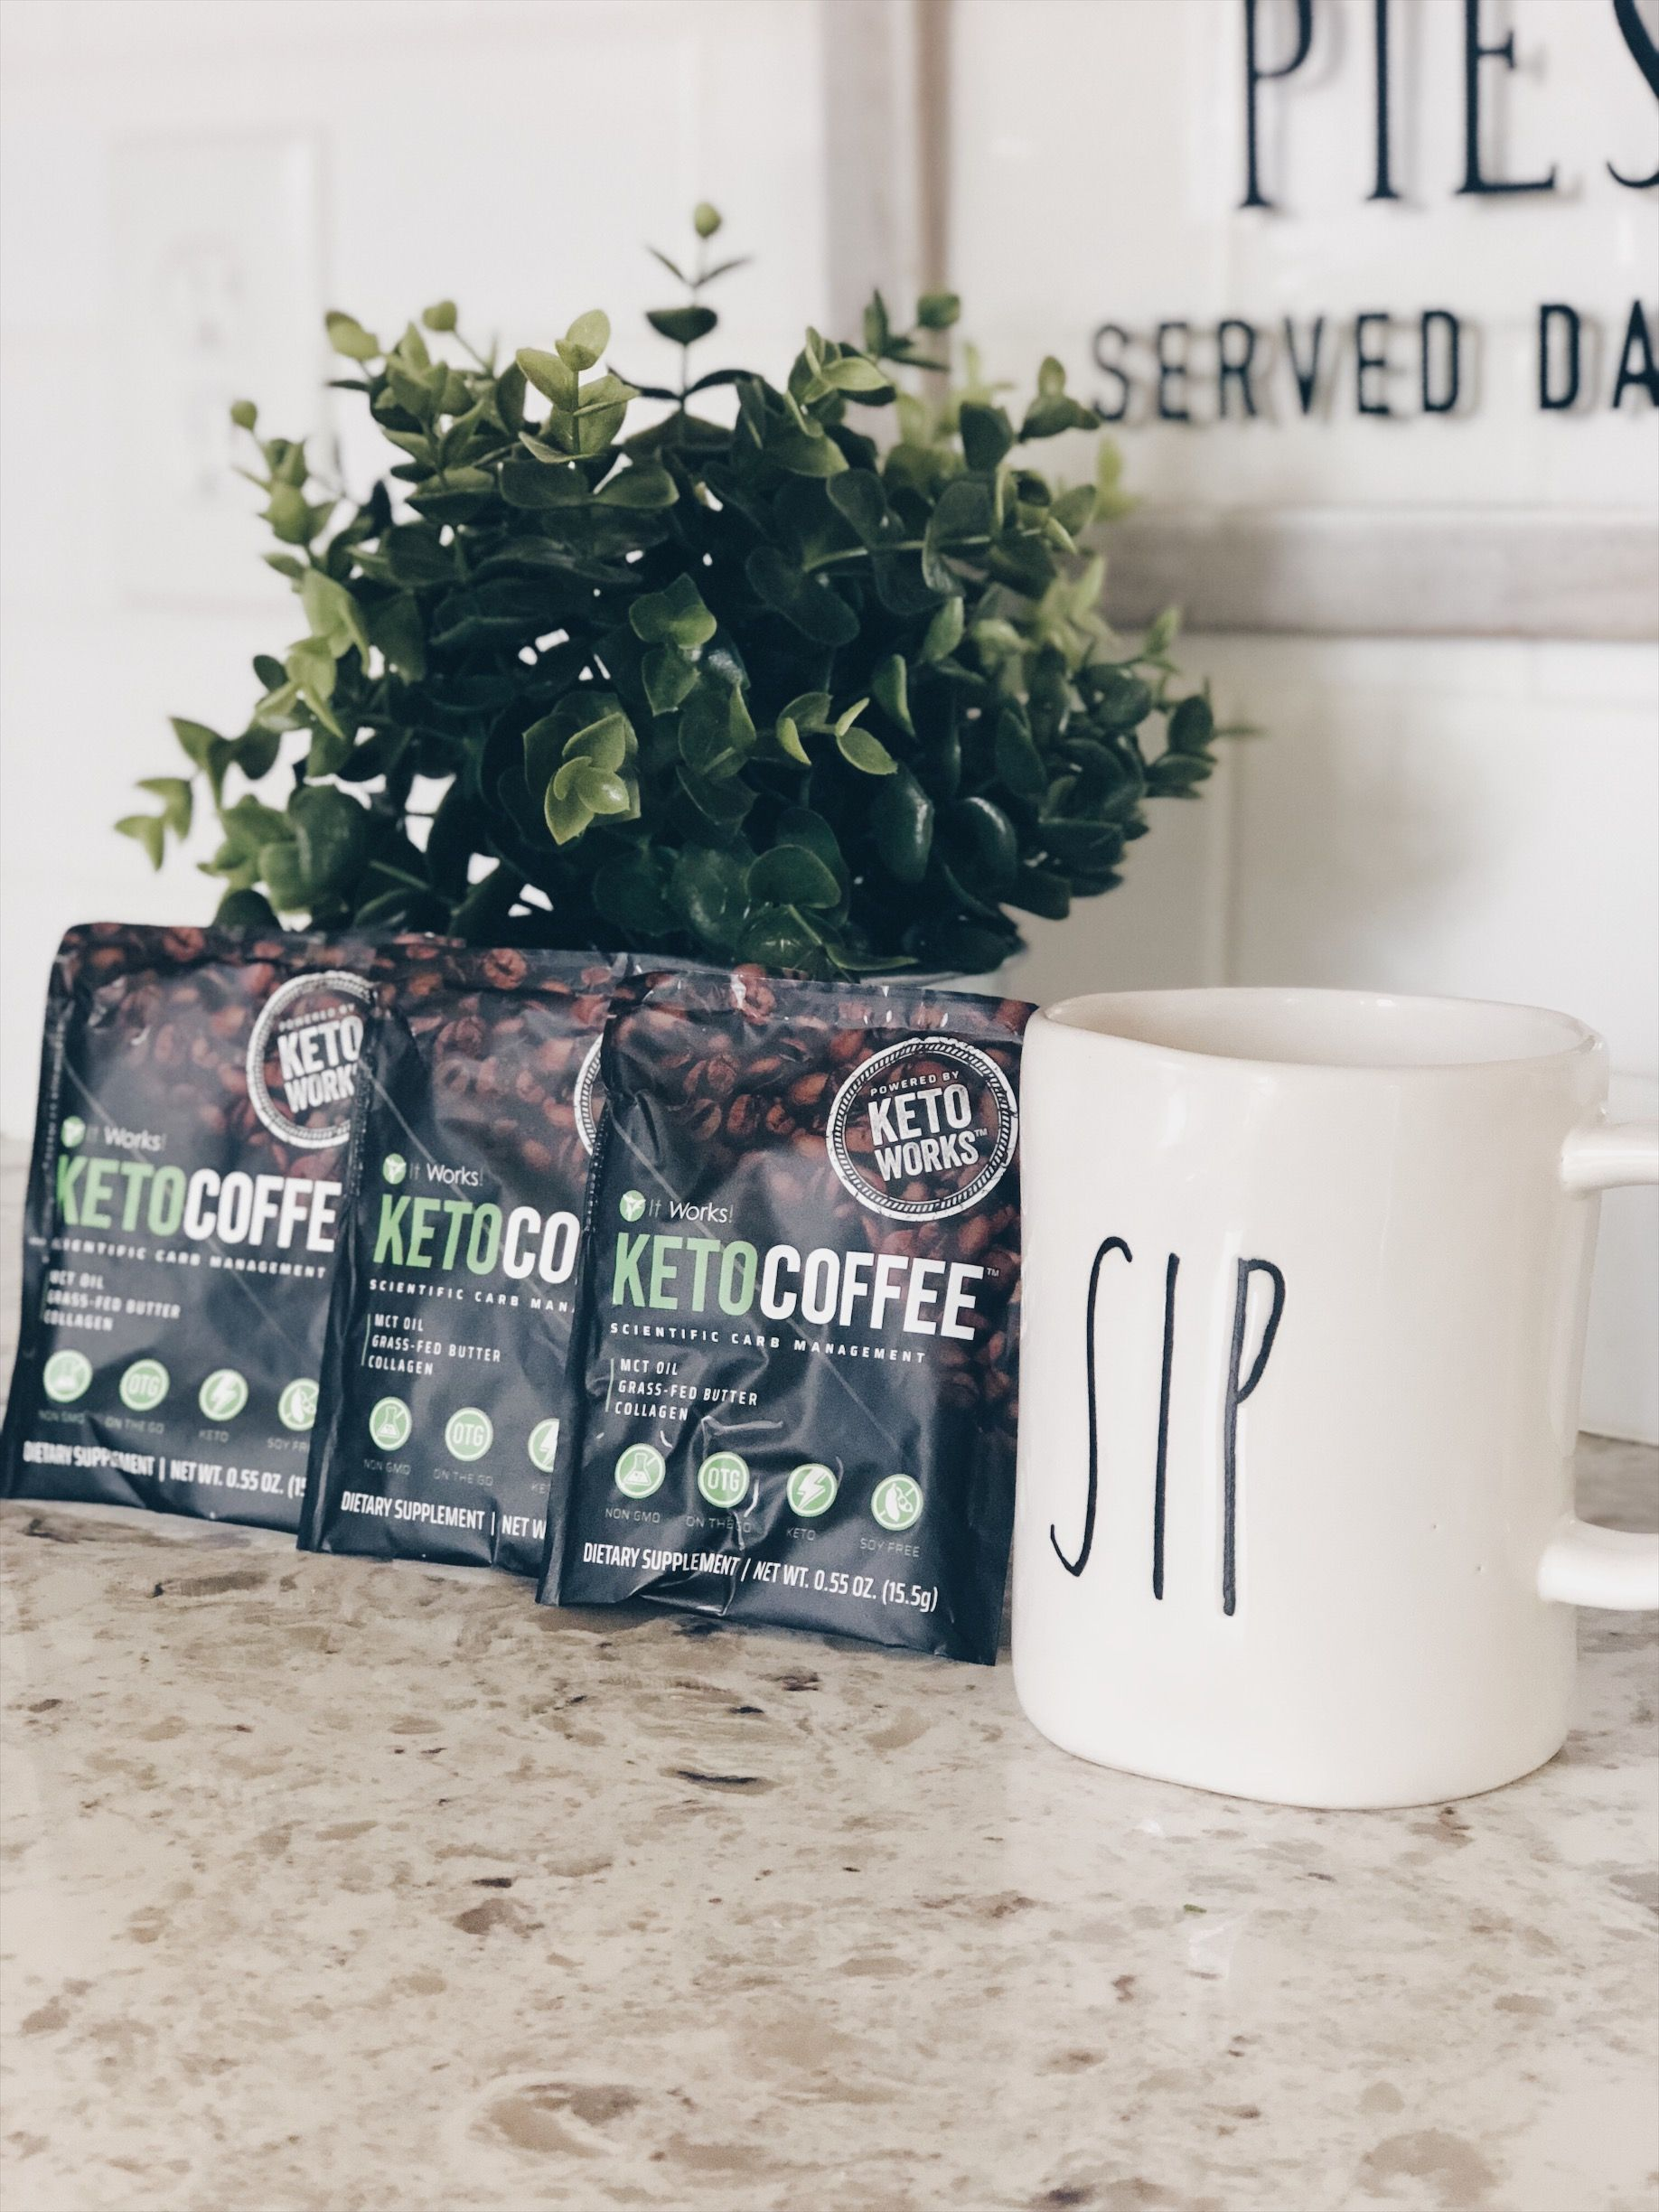 No one else has this NEW KETO Coffee!! So easy and mess free  On the